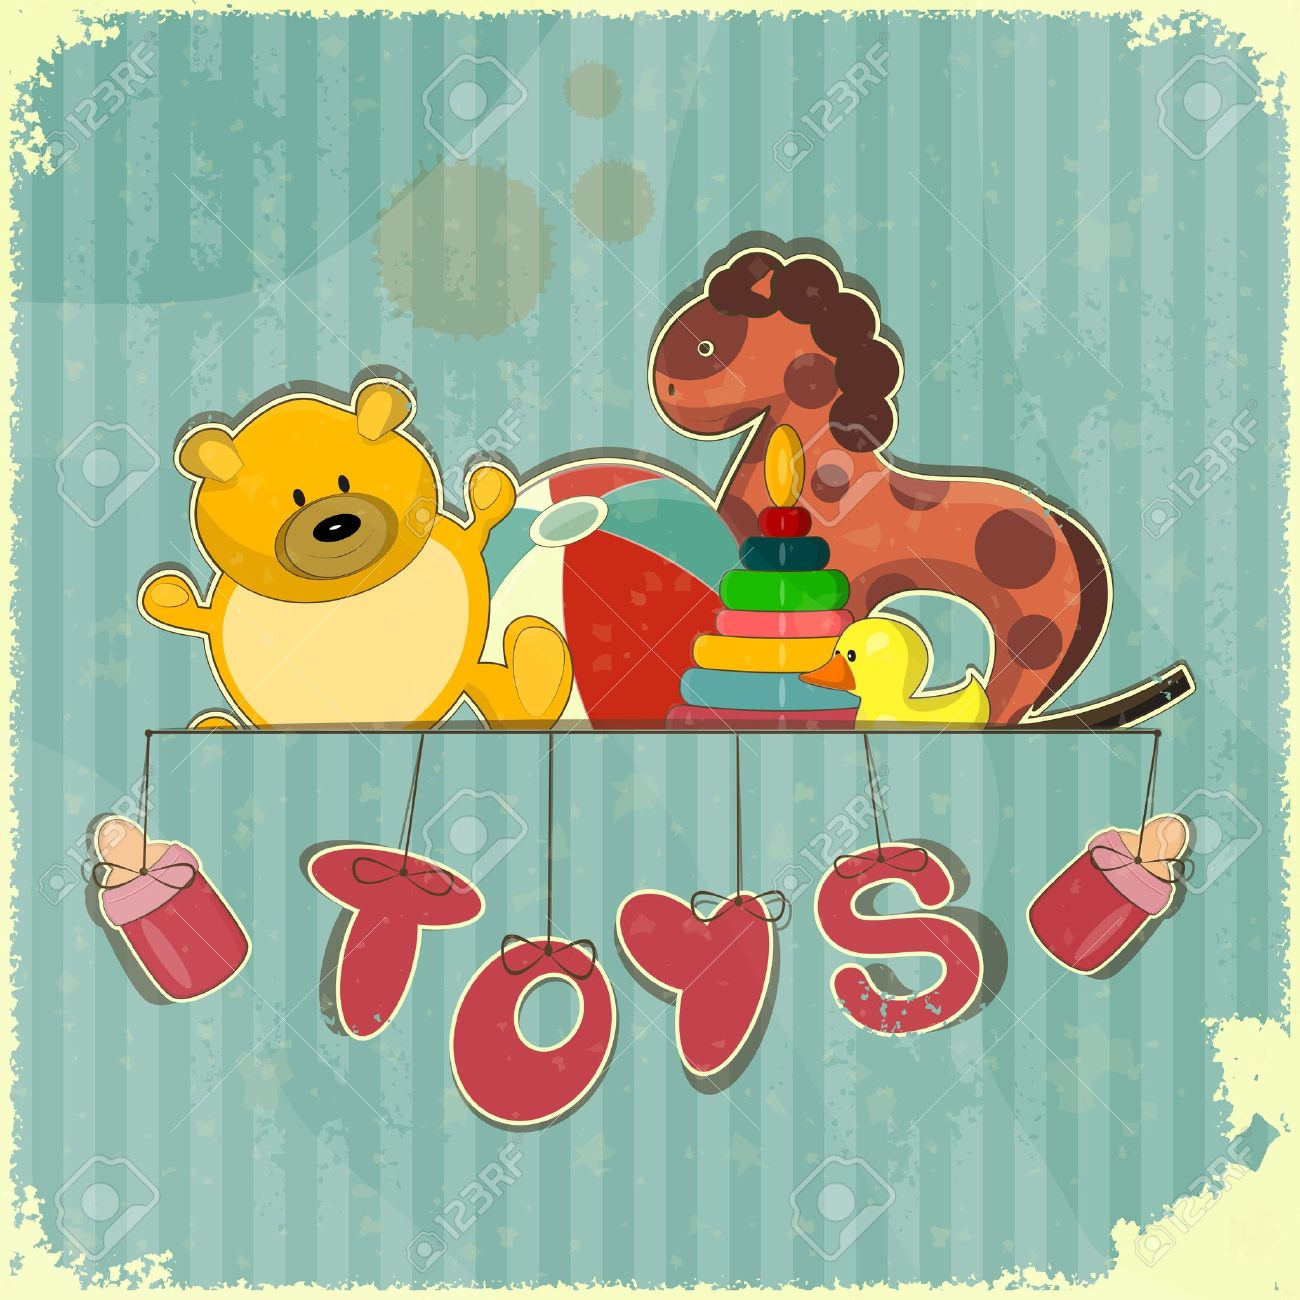 38,423 Vintage Toys Stock Vector Illustration And Royalty Free.